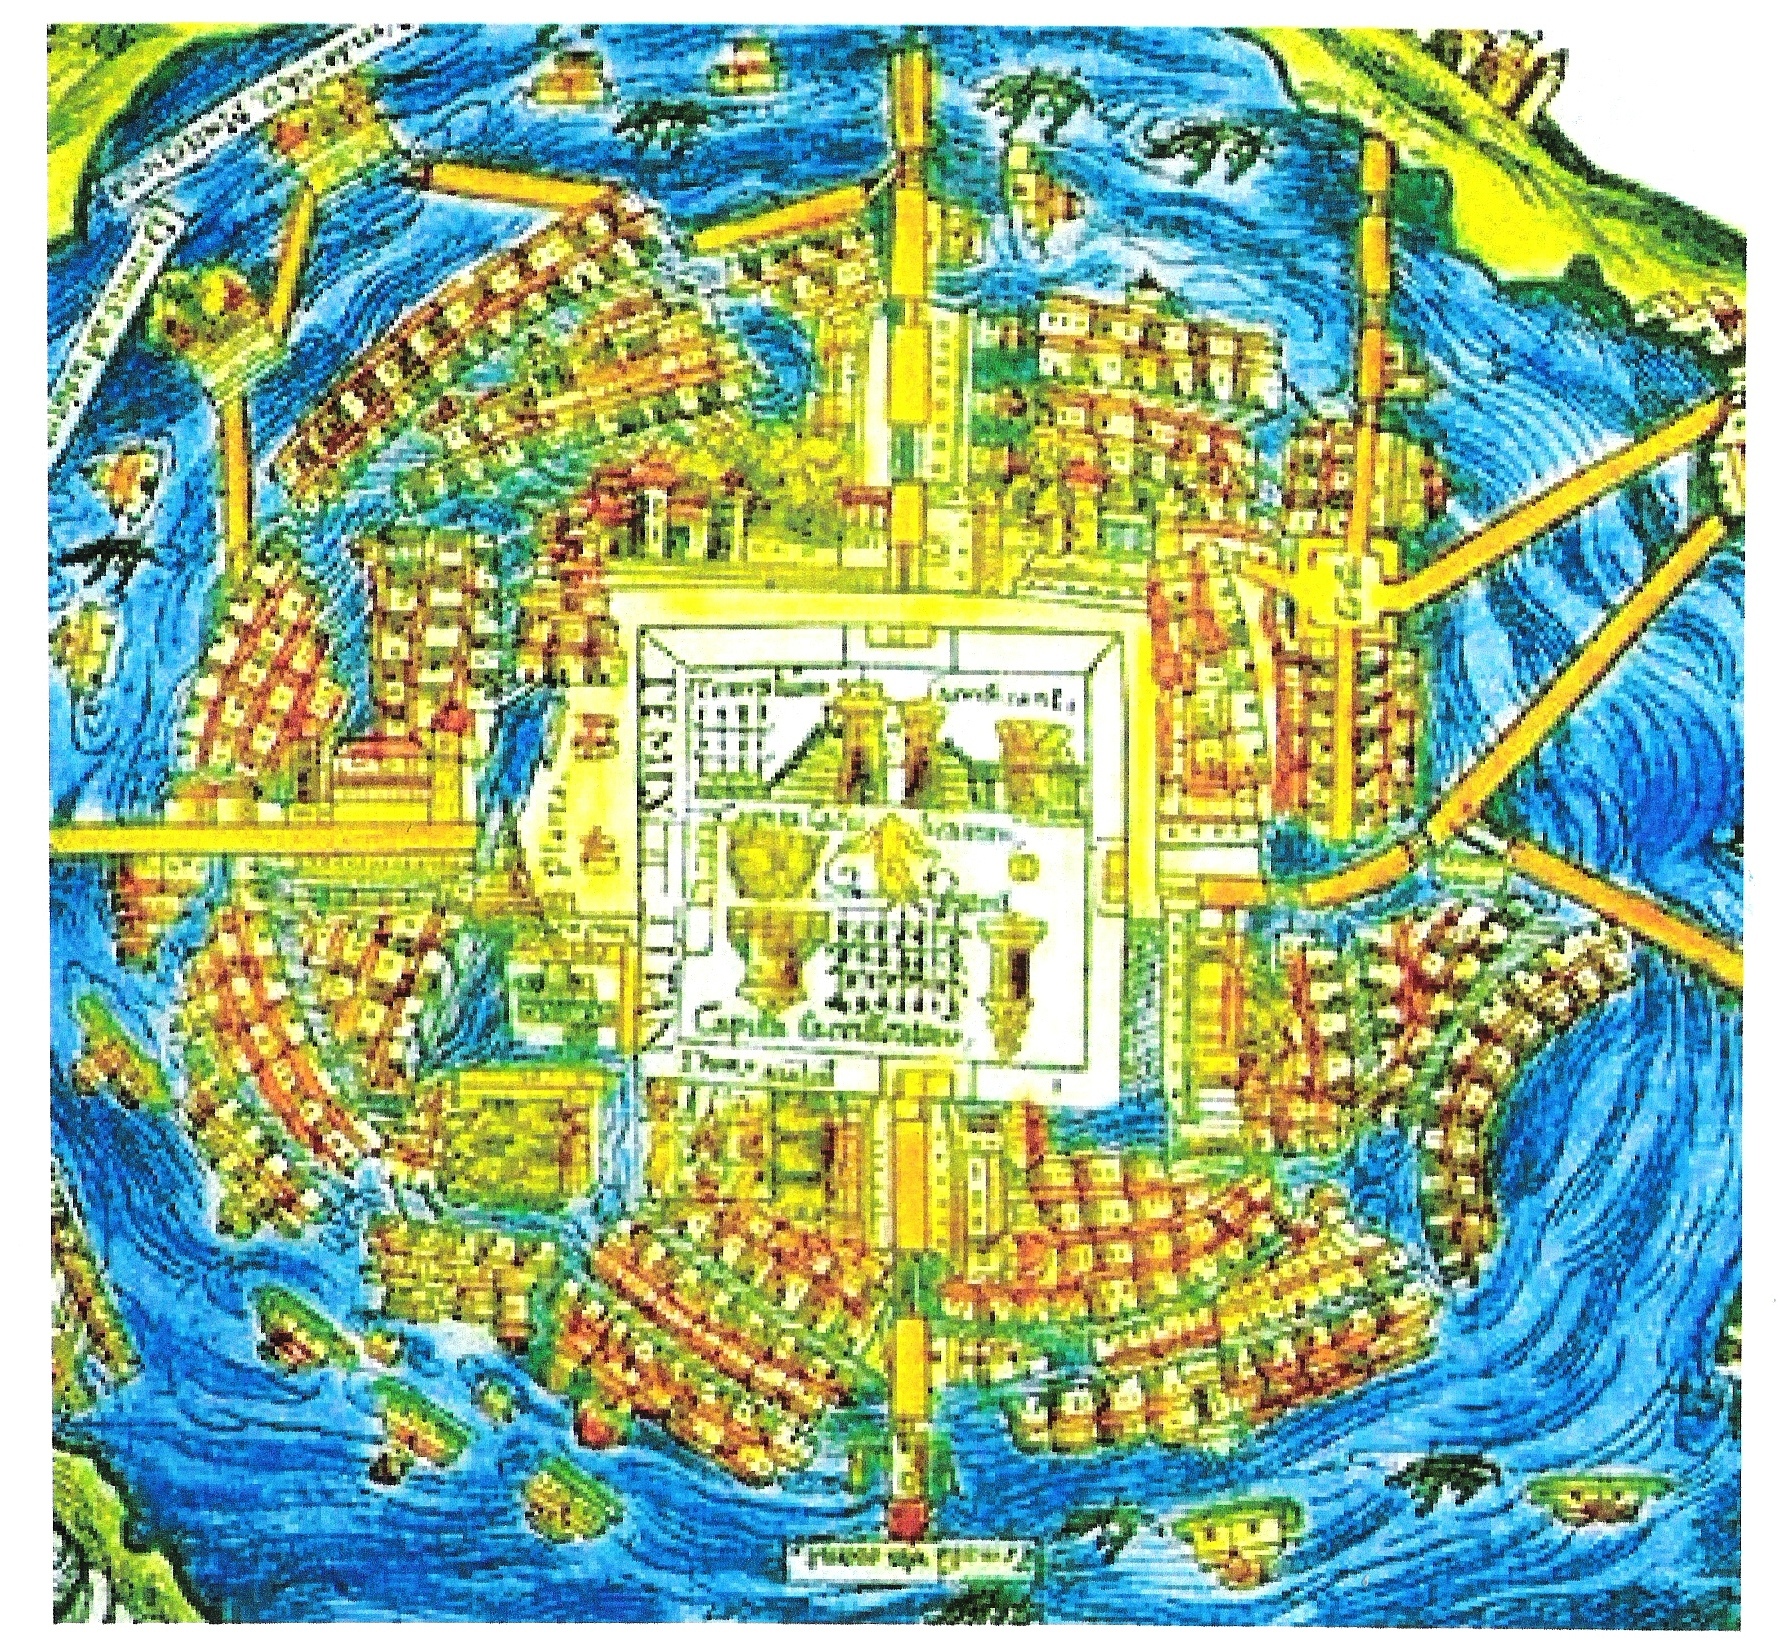 Mexico City in 1519CE